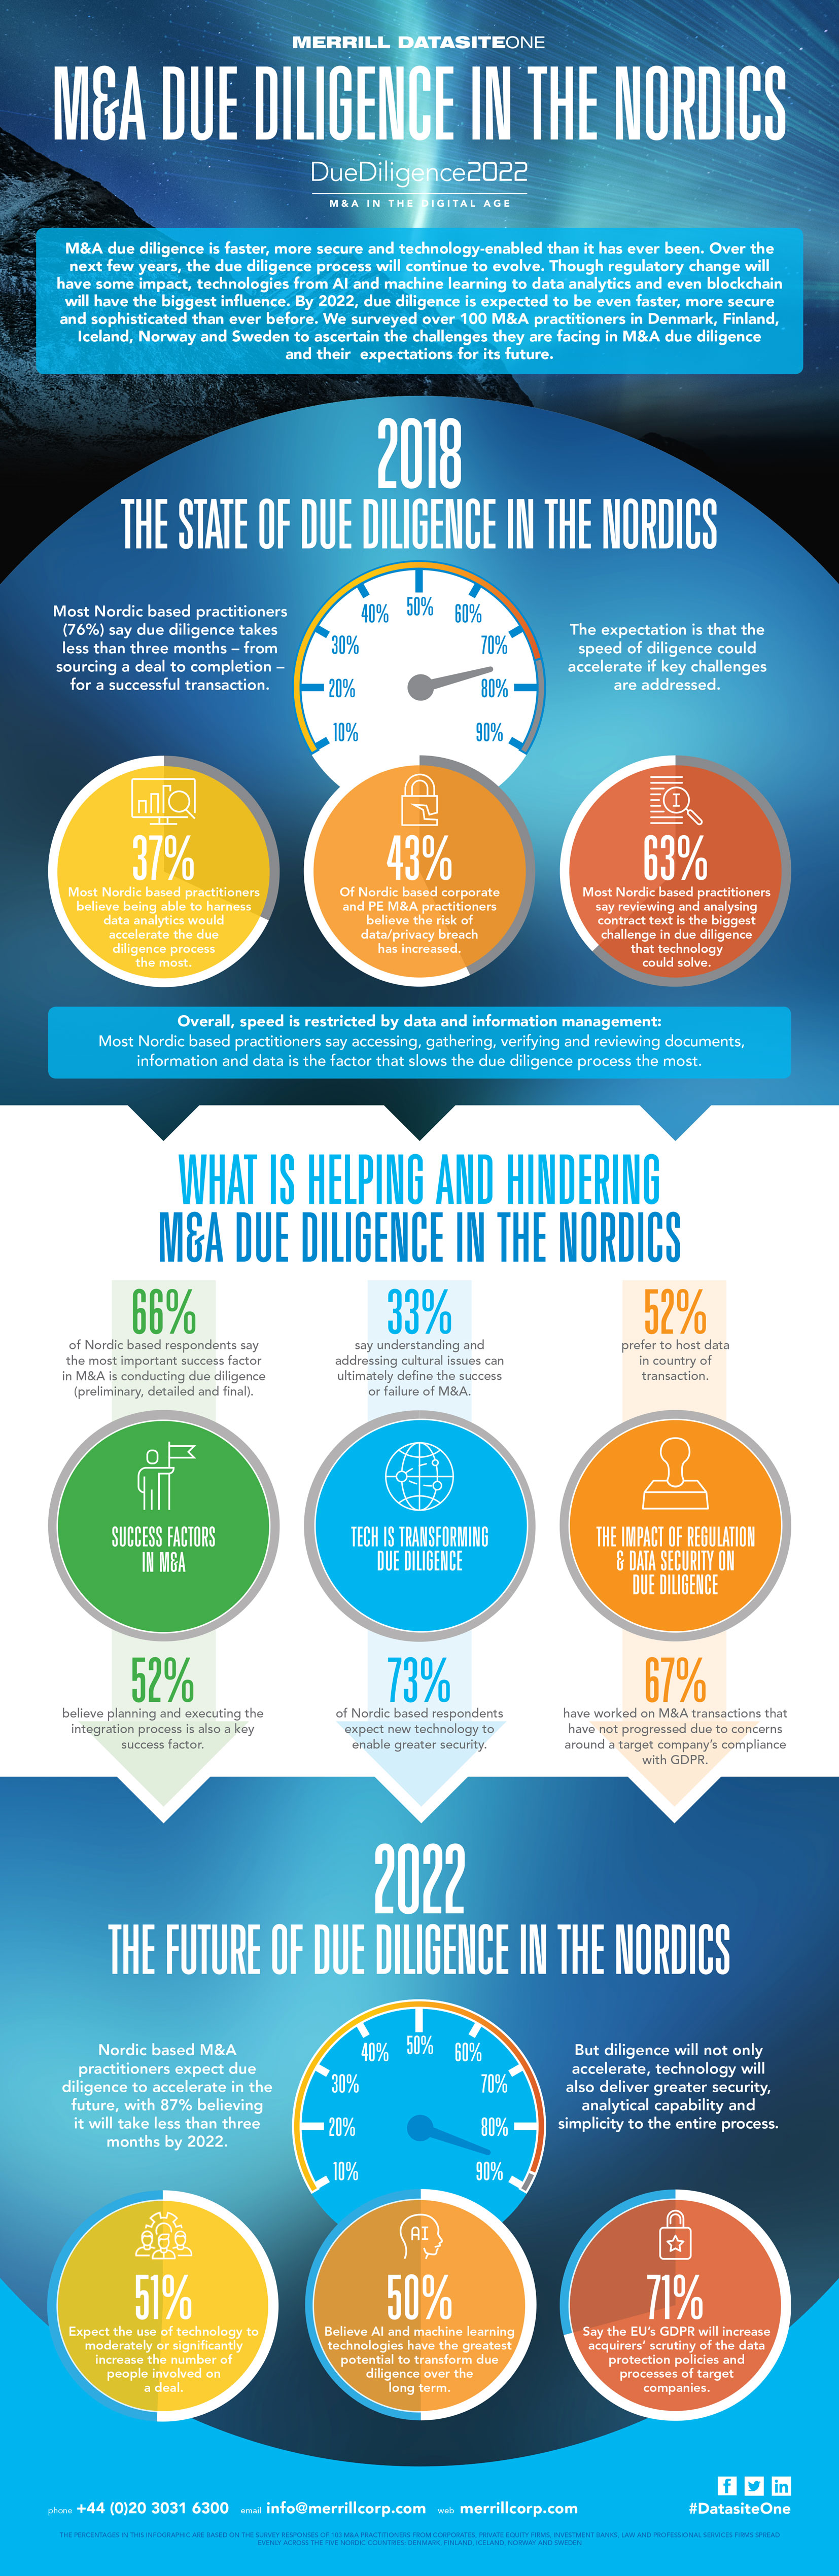 M&A state of due diligenc in the nordics infographic